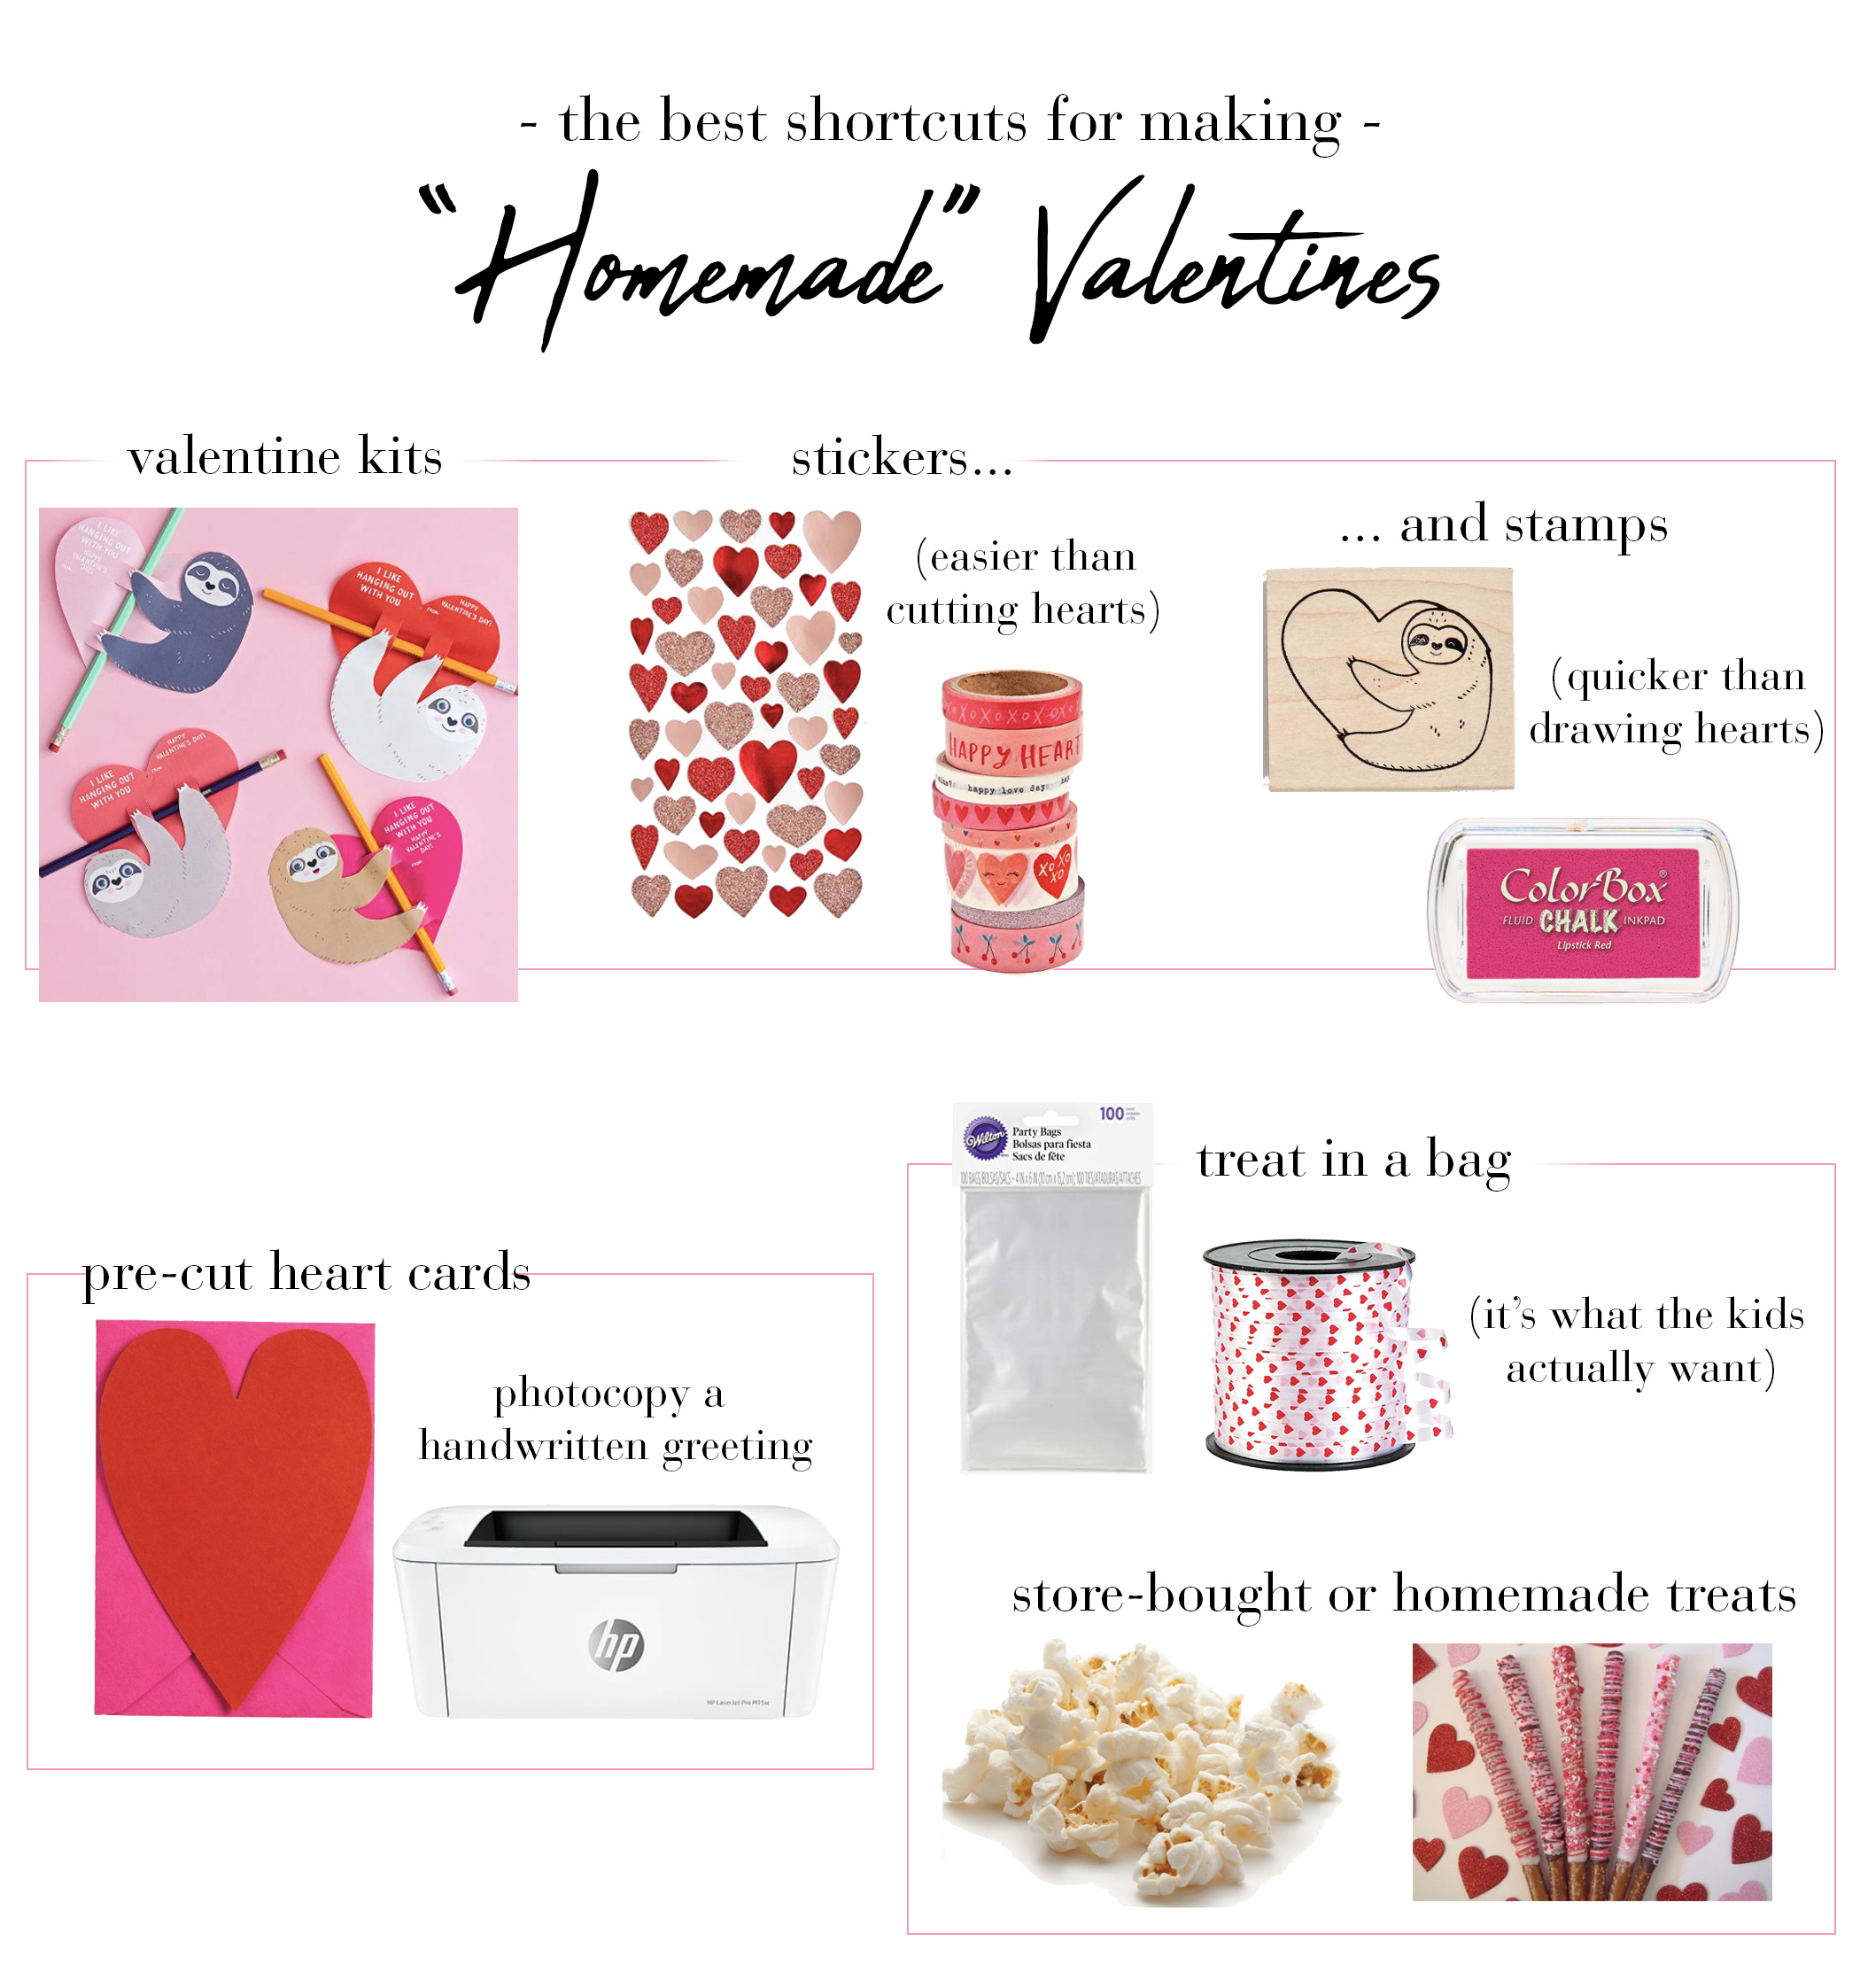 February + Momming = Valentines Day class parties. Want that homemade valentines feel, but don't have the DIY time? Check out our fav card-making shortcuts.